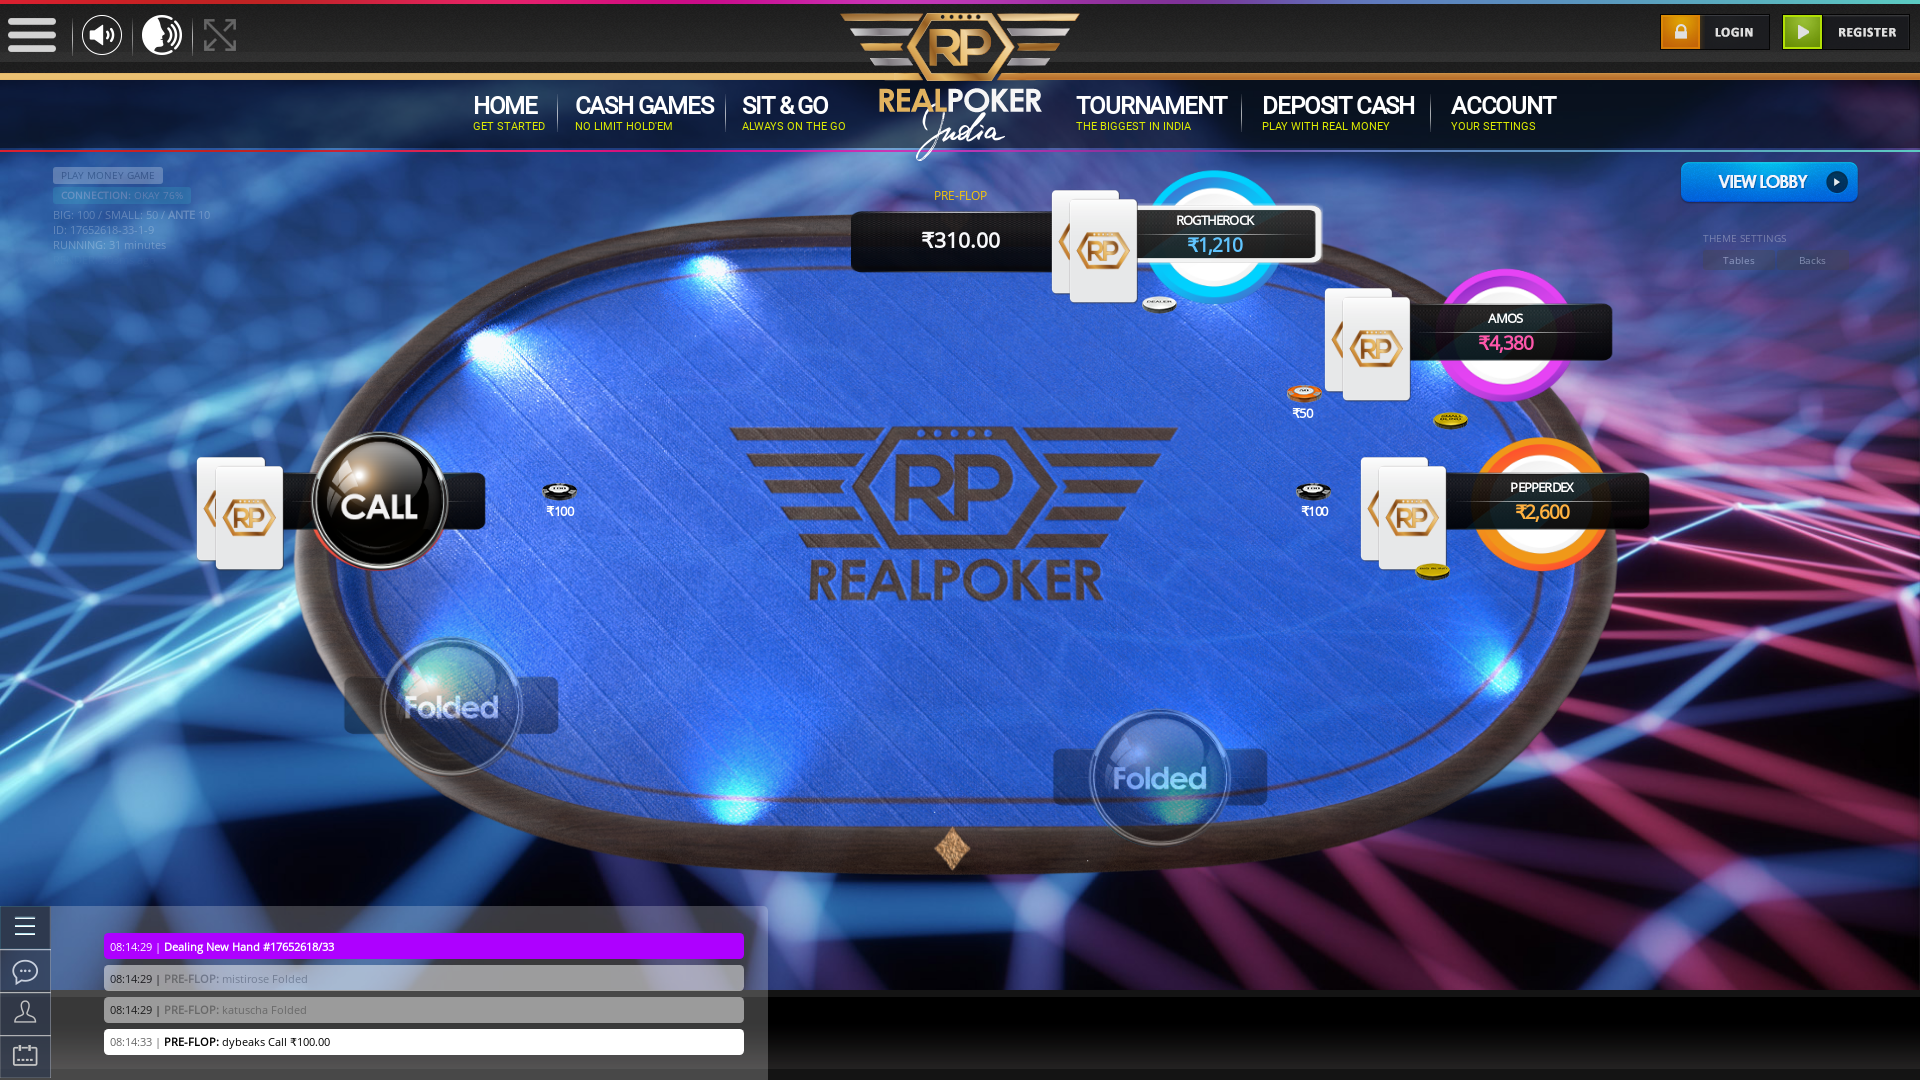 Real poker 10 player table in the 3 match